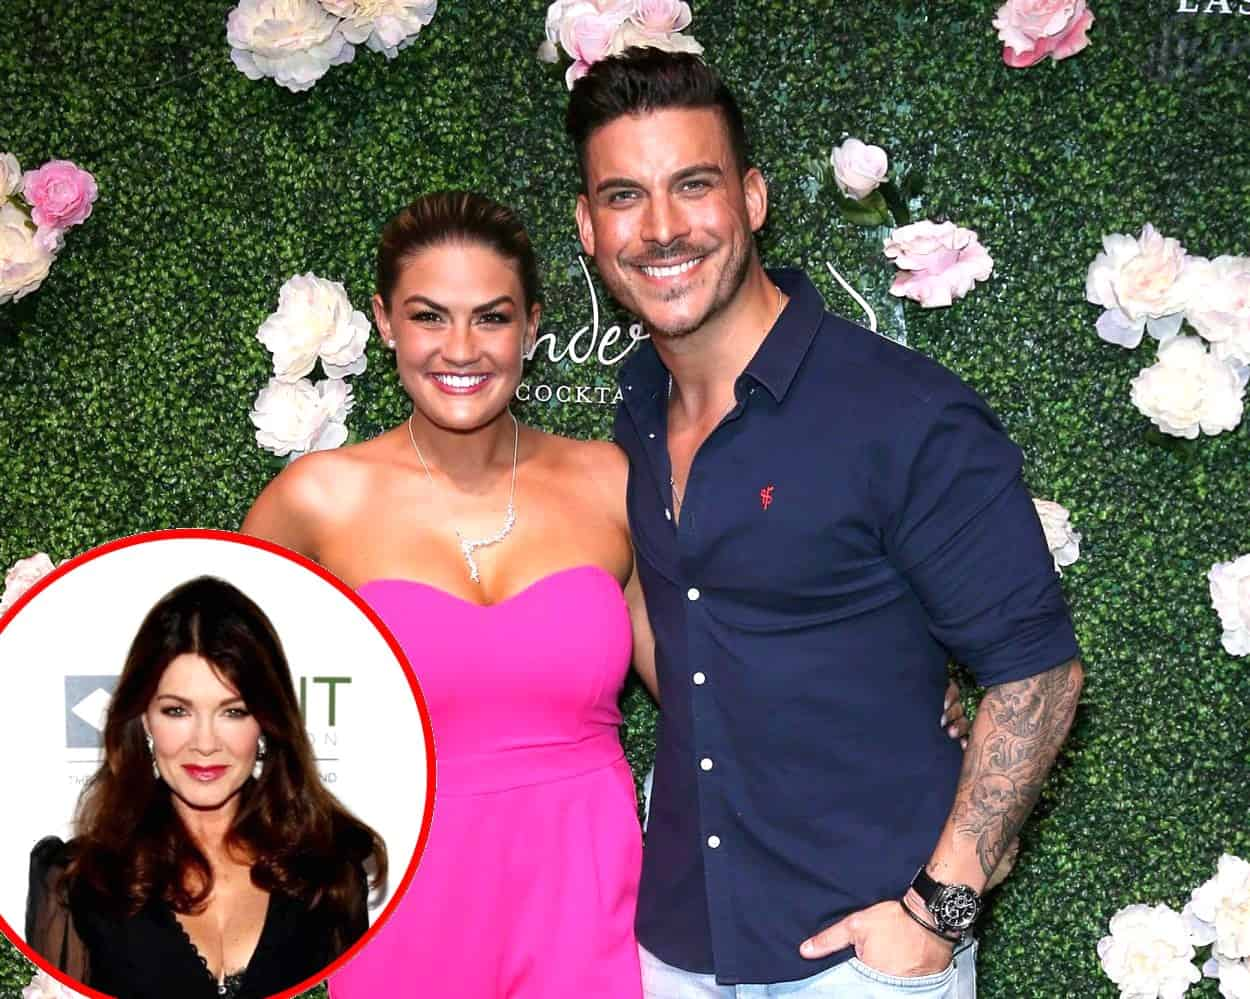 Jax Taylor Reveals If He's in Touch With Lisa Vanderpump and Offers Update on Mother-in-Law Sherri's Health, Vanderpump Rules Star Shares 3D Baby Photos and Confirms He and Brittany Have Chosen a Baby Name